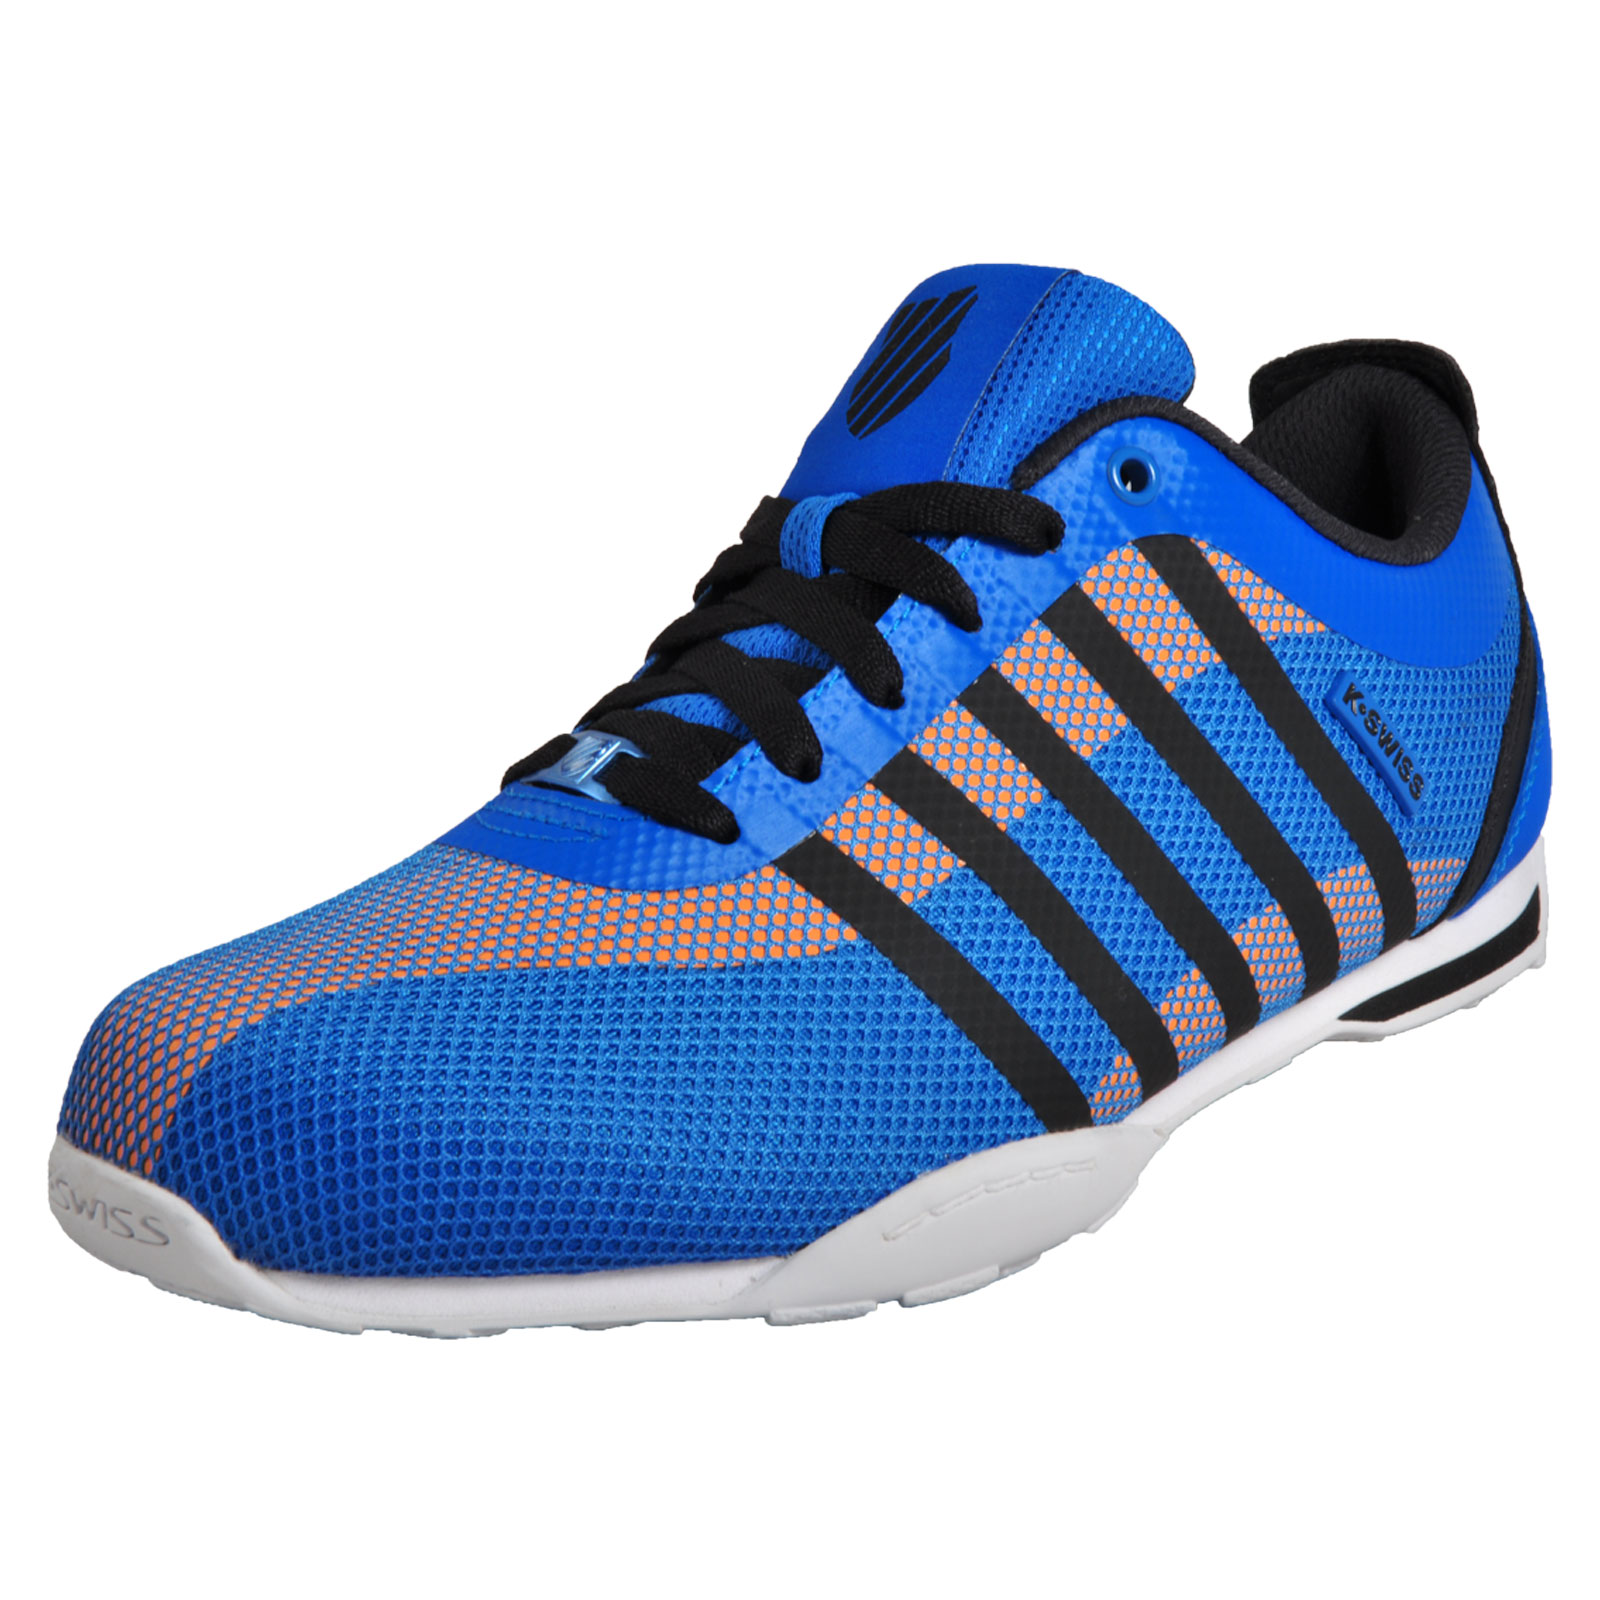 Details about K-Swiss Mens Arvee 1.5 Tech Trainers Low Retro Style Iconic  Athletic Shoes Blue 66b313a0d